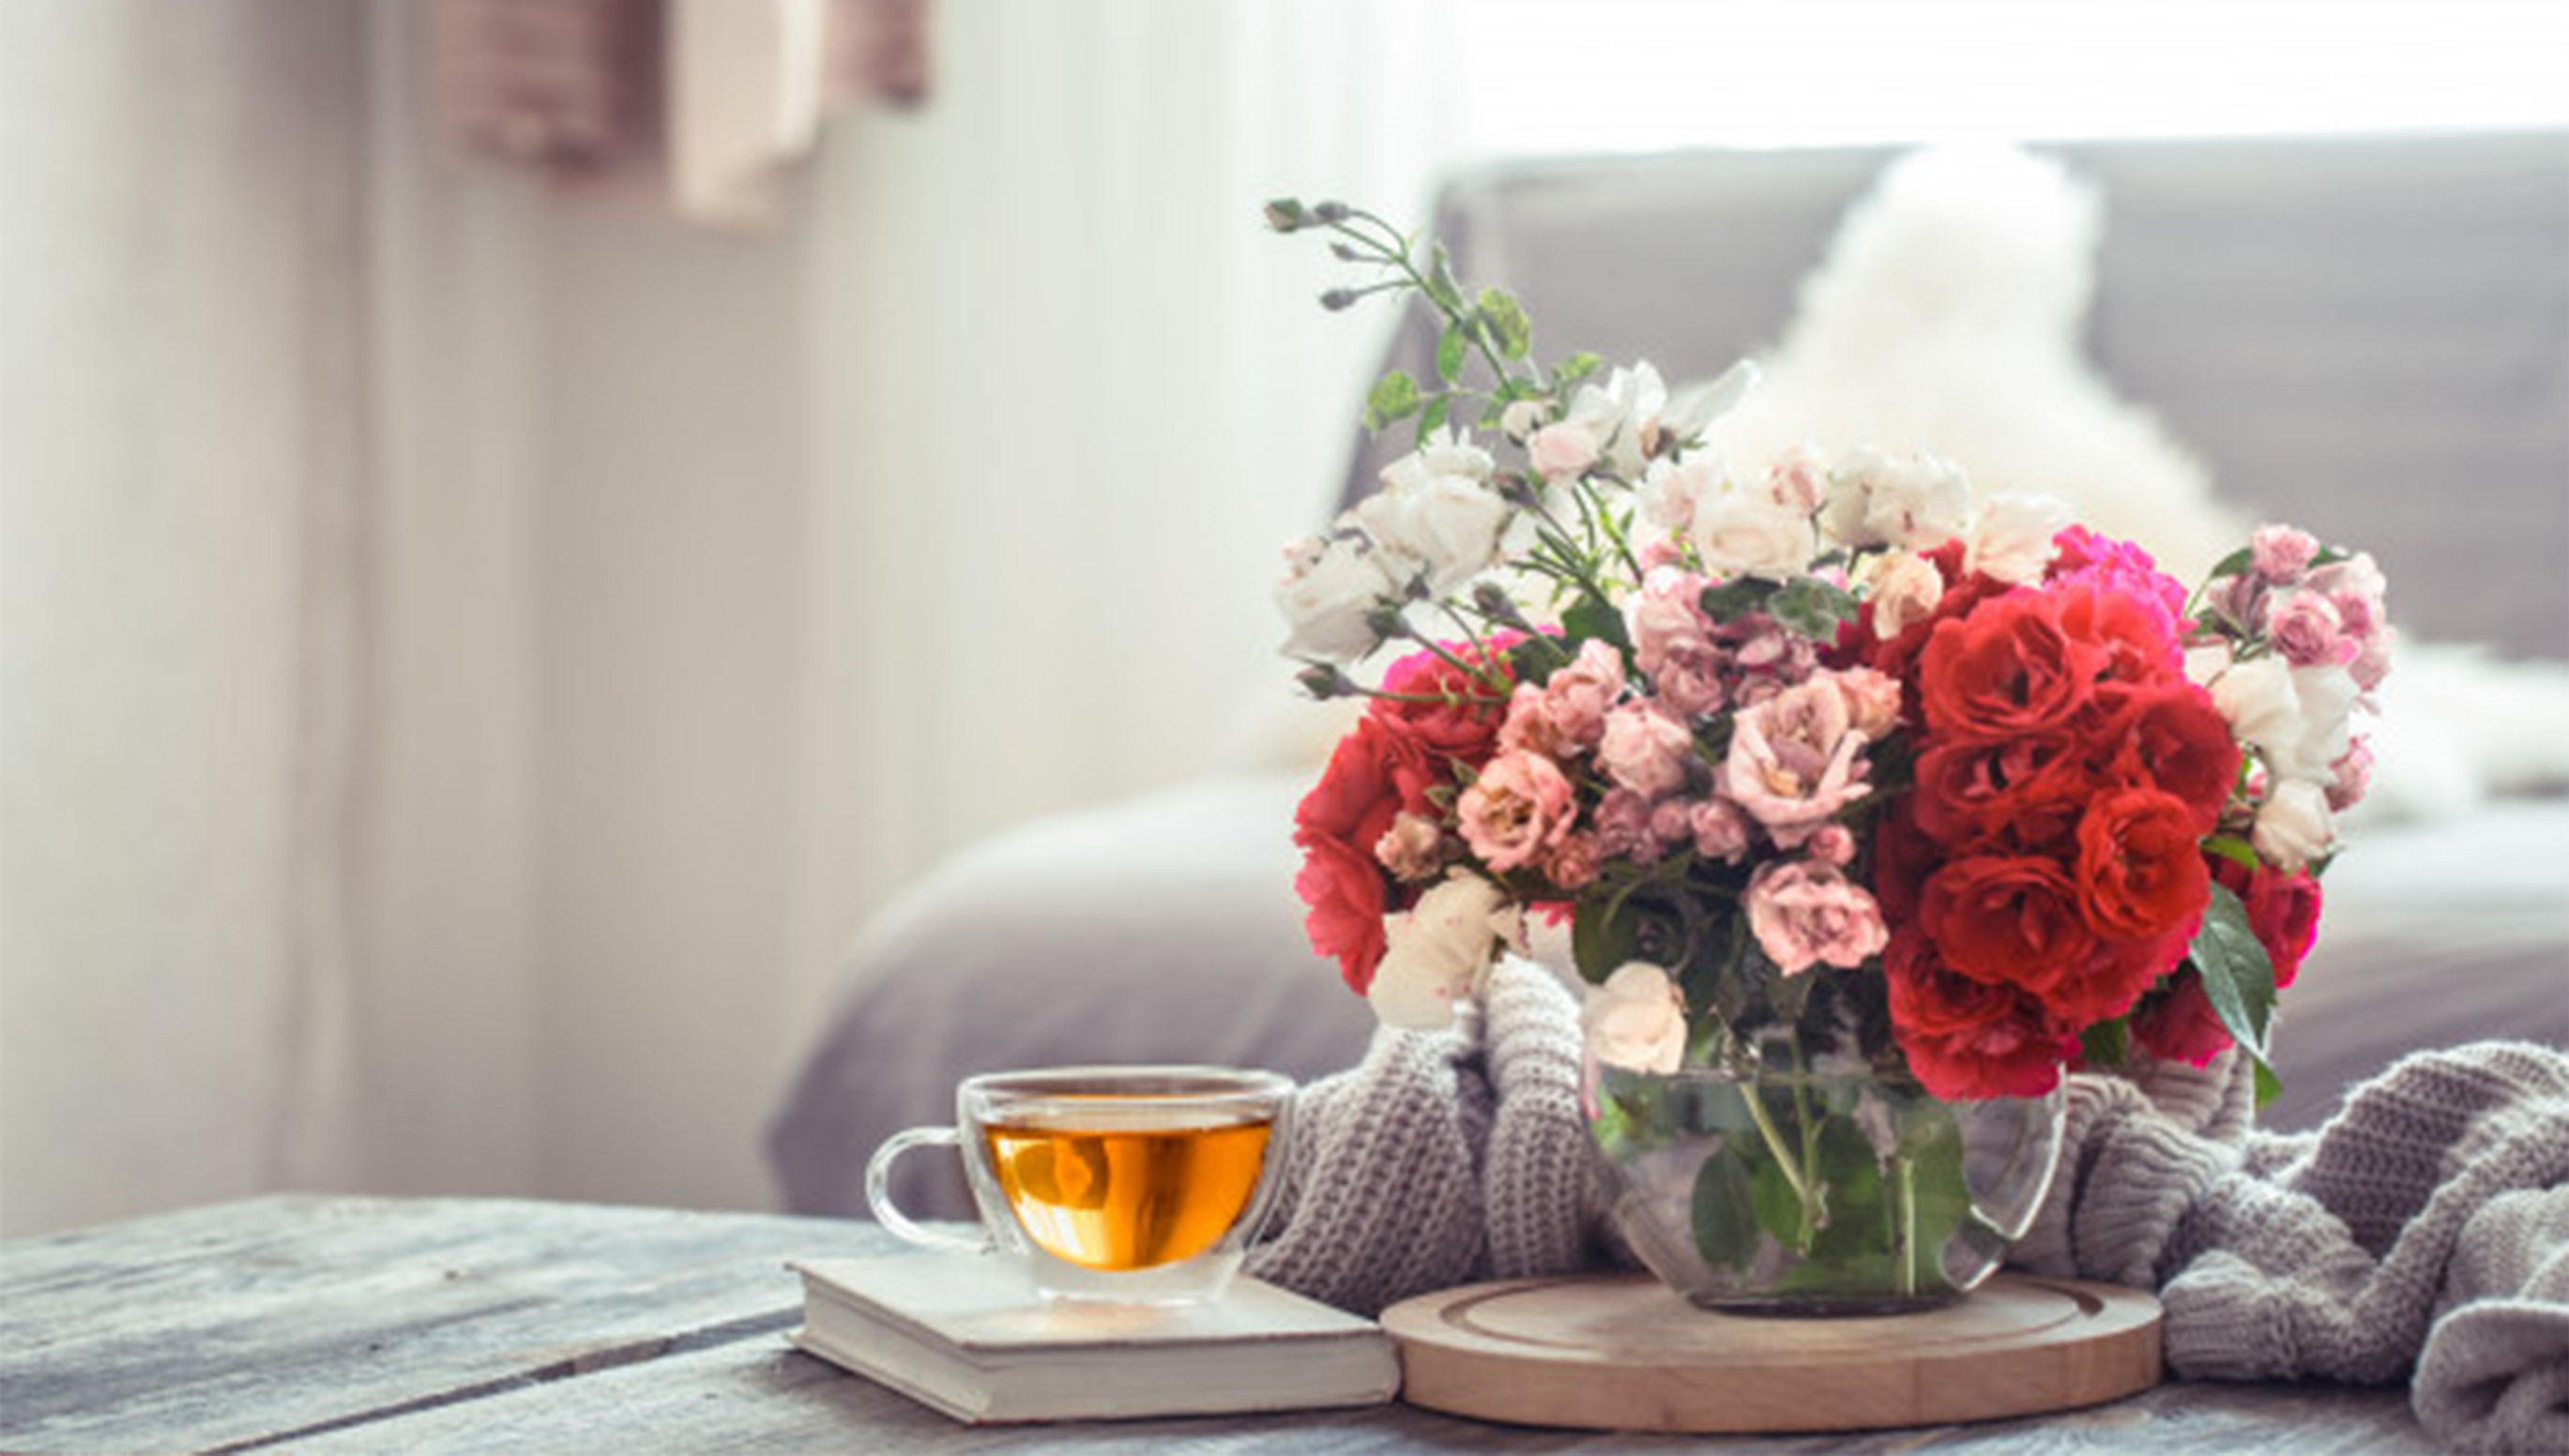 HDecorating Your Home with Fresh Flowers